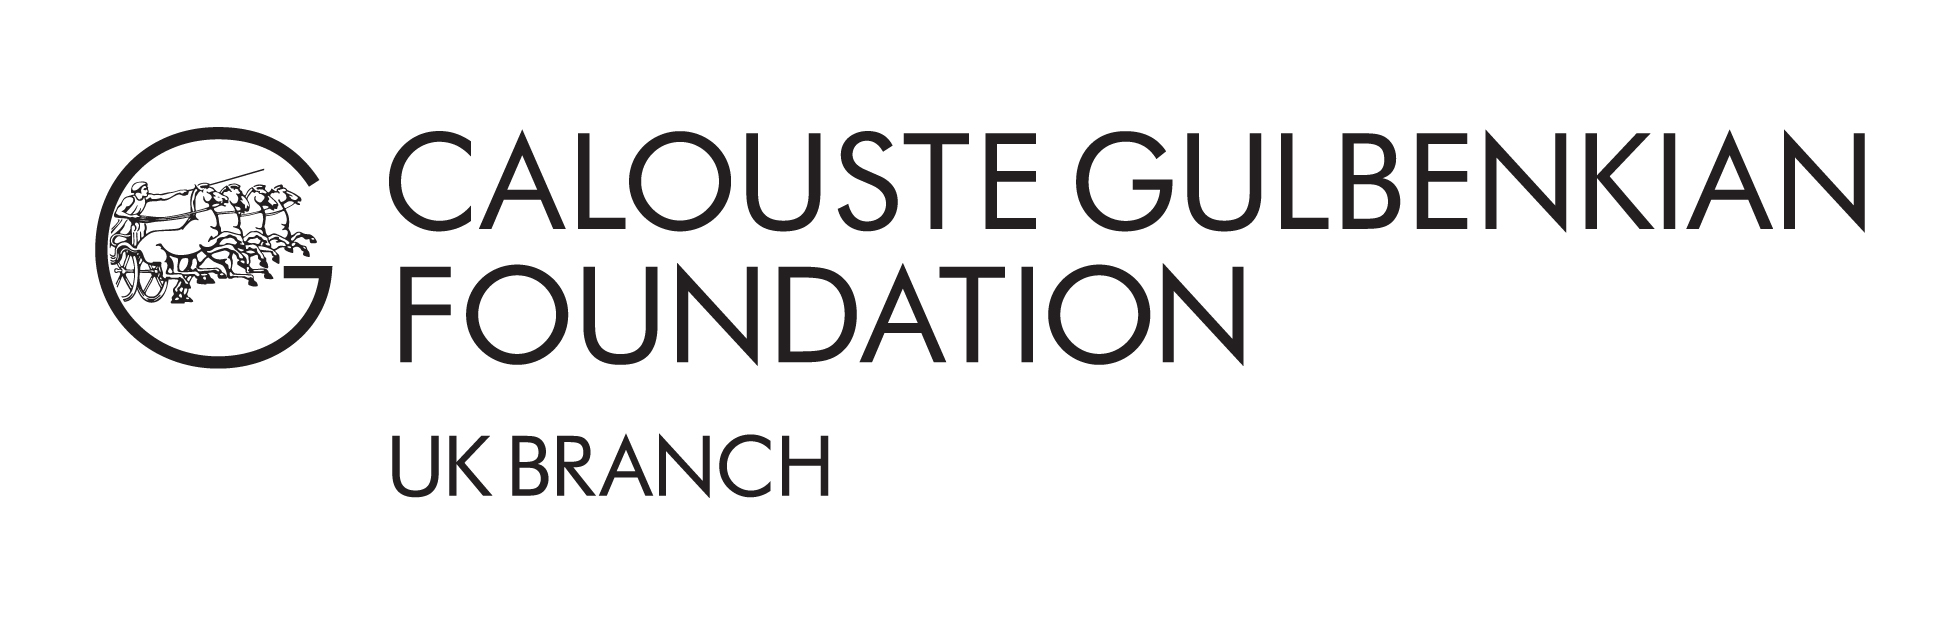 Logo for Calouste Gulbenkian Foundation - UK Branch